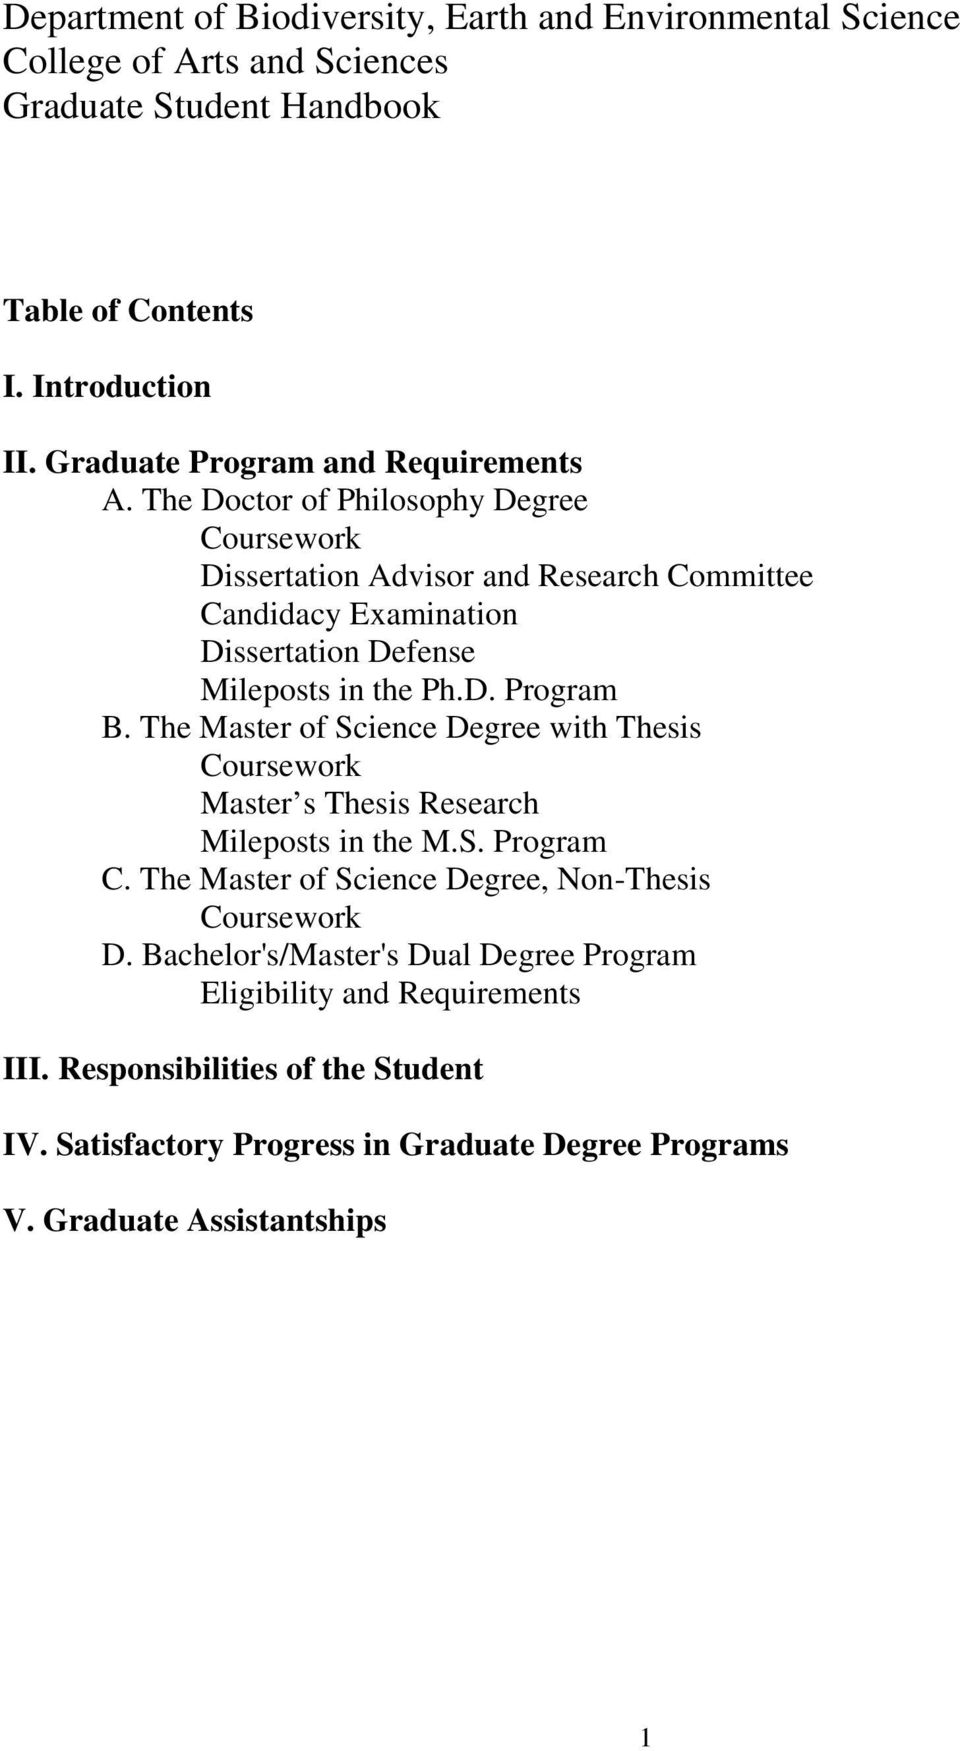 The Doctor of Philosophy Degree Coursework Dissertation Advisor and Research Committee Candidacy Examination Dissertation Defense Mileposts in the Ph.D. Program B.